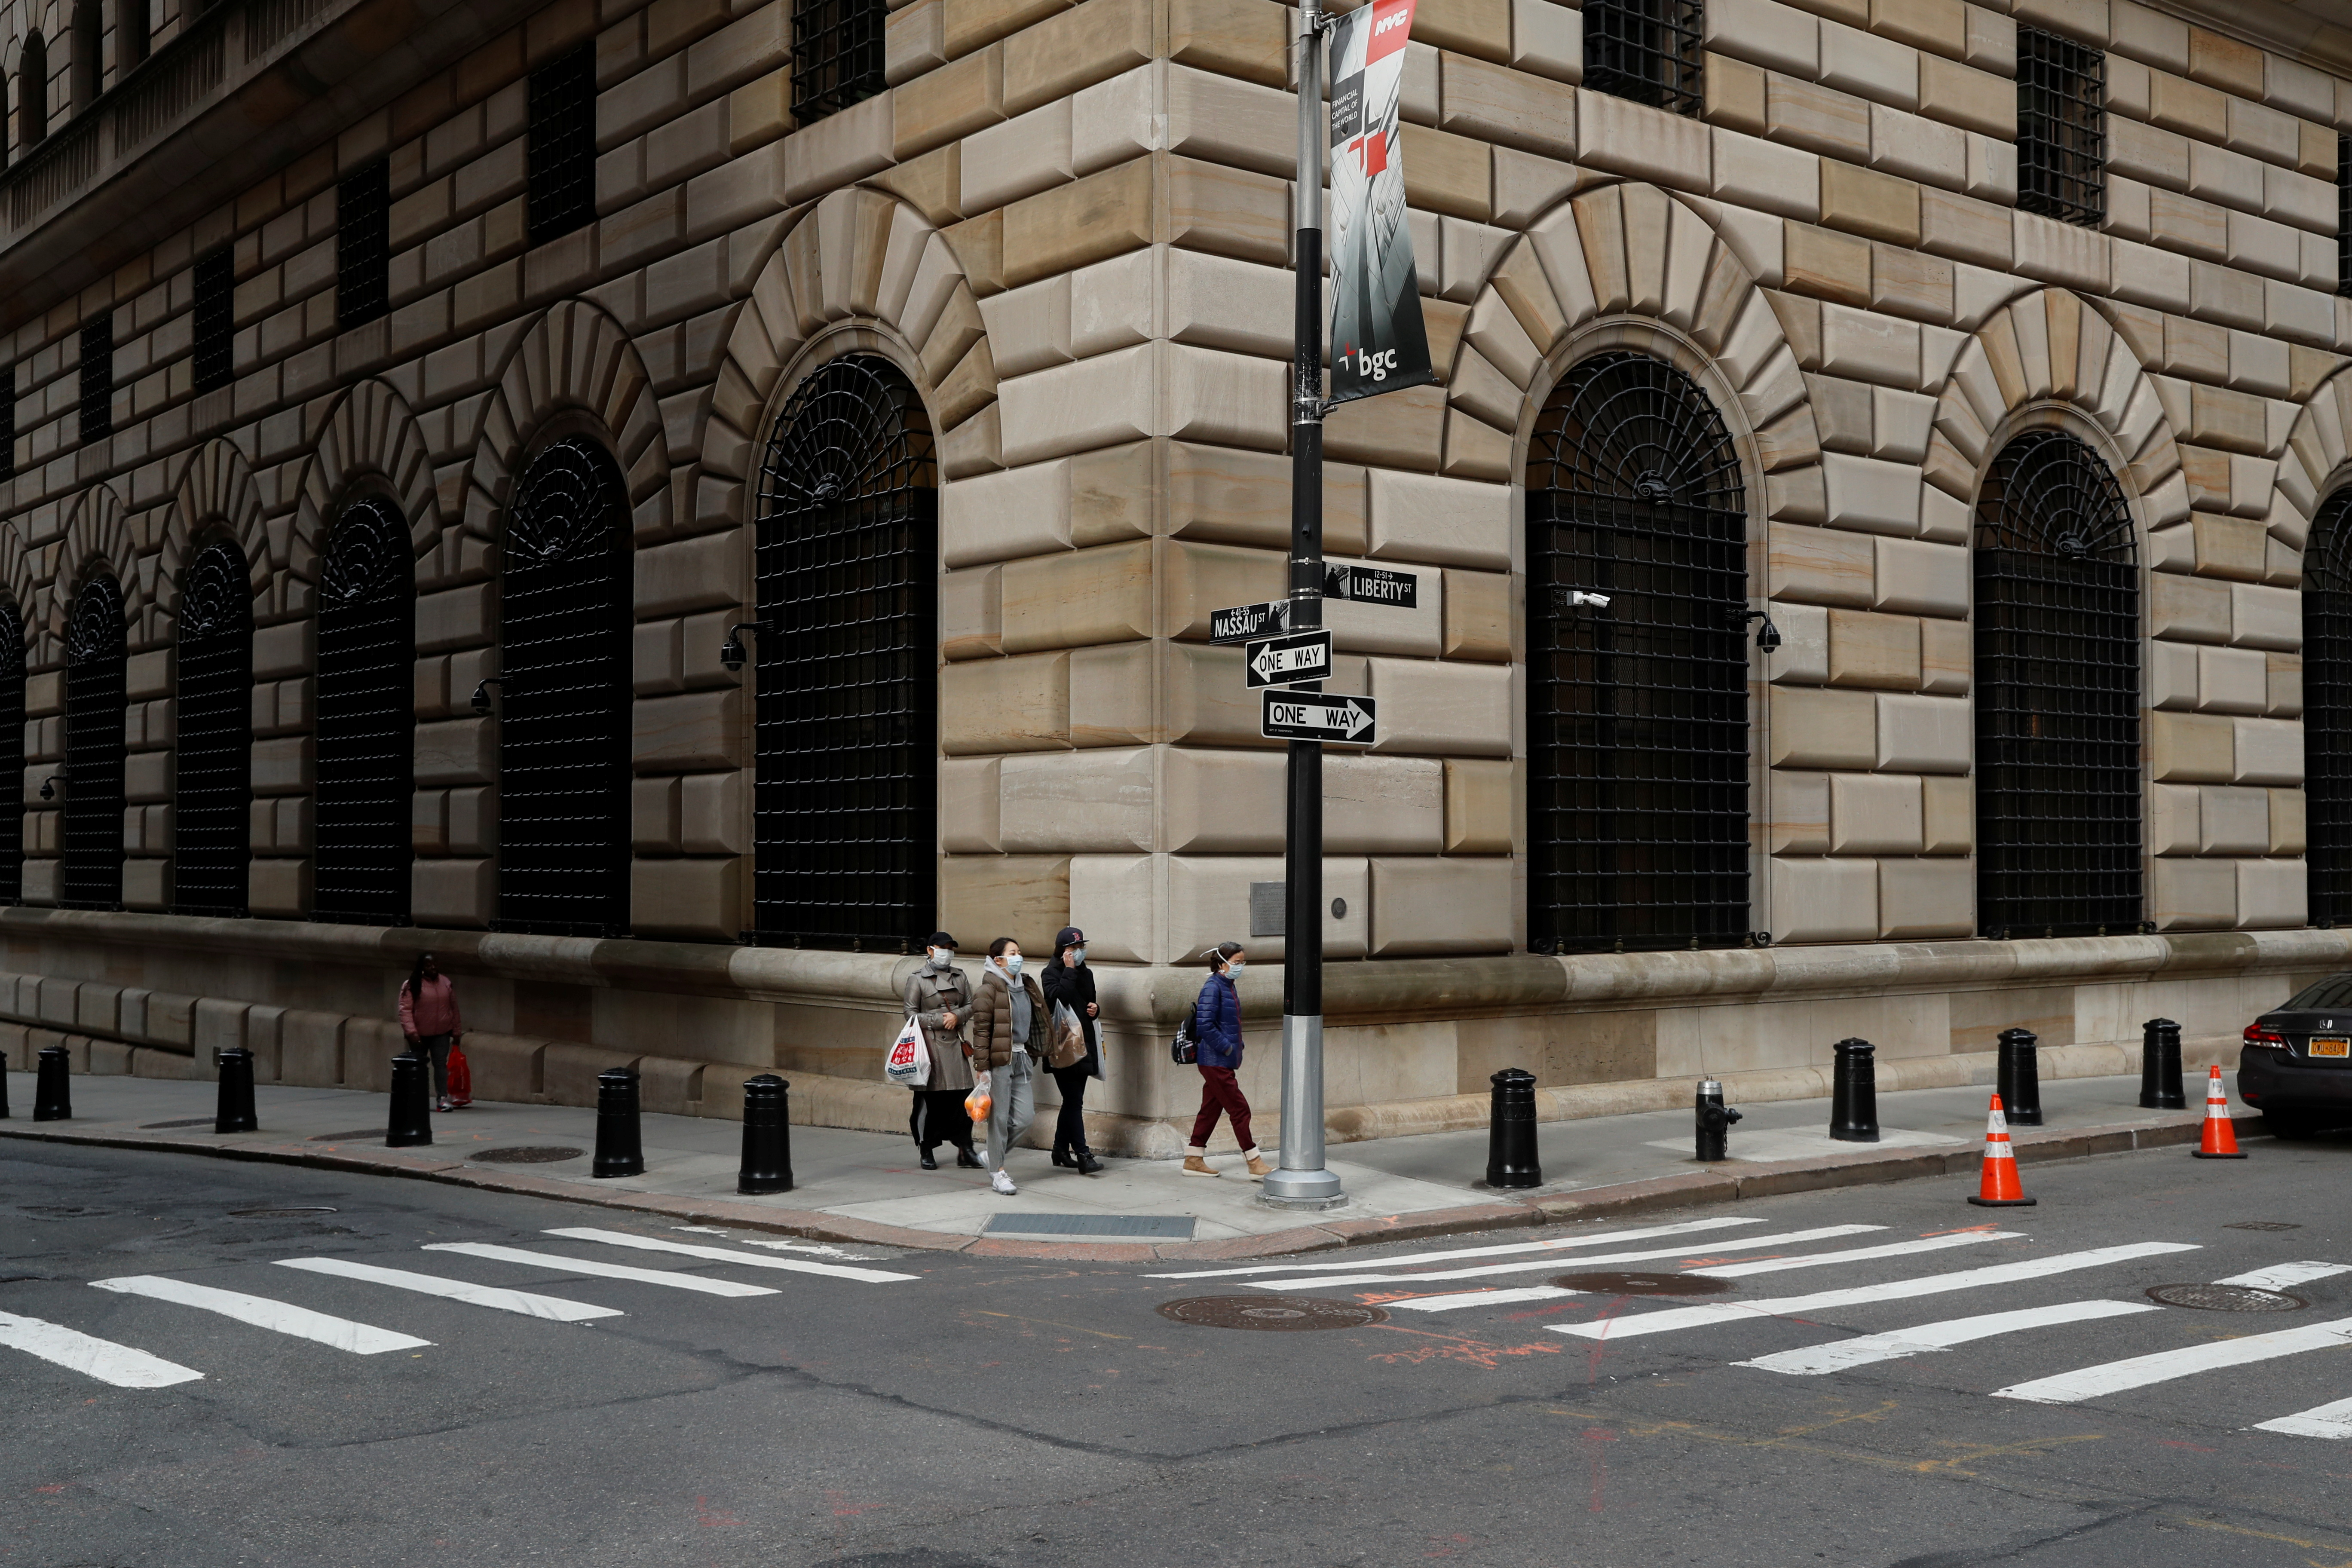 People walk wearing masks outside The Federal Reserve Bank of New York in New York City, U.S., March 18, 2020. REUTERS/Lucas Jackson/File Photo